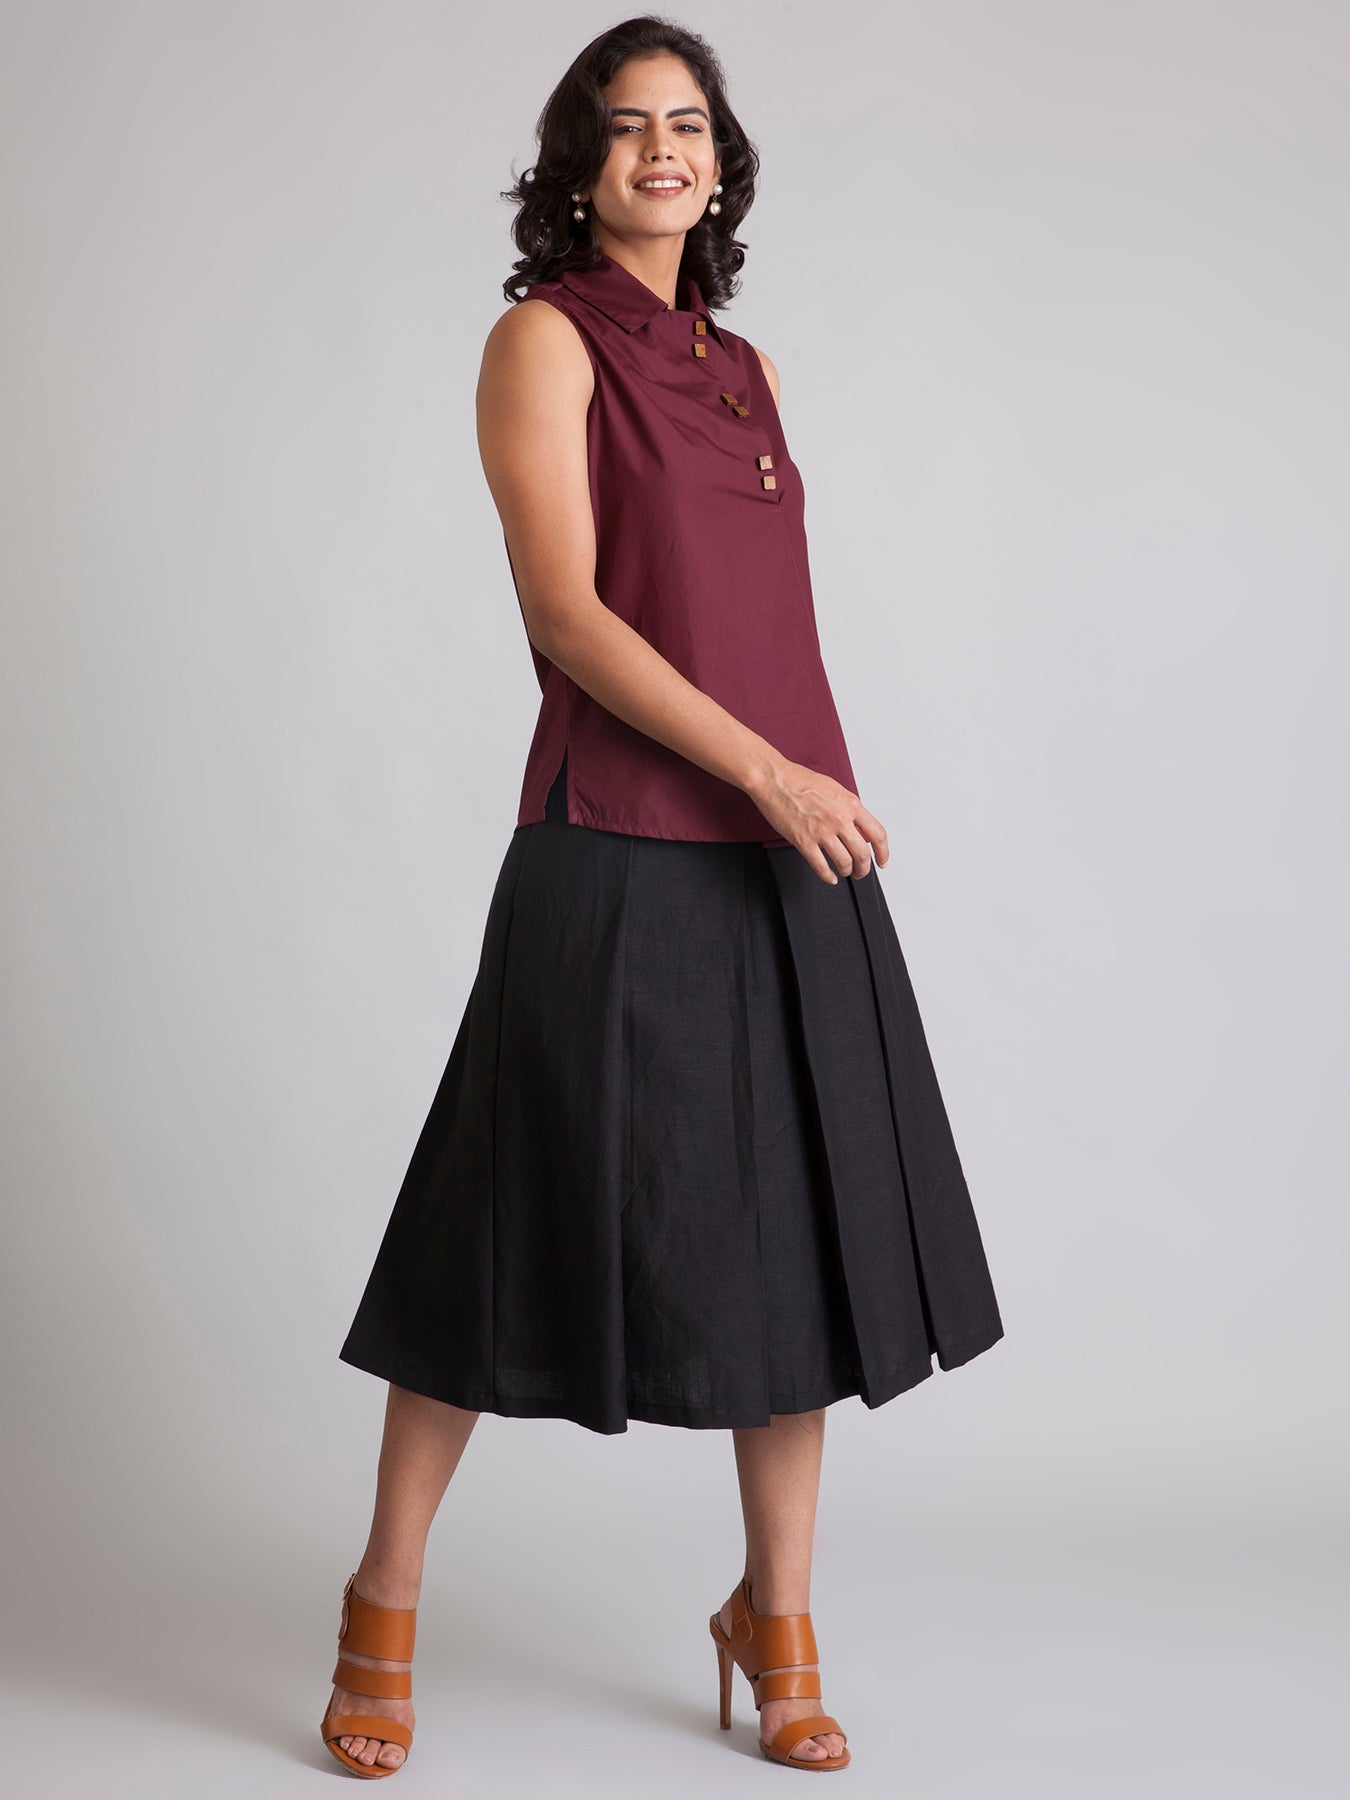 Collared Wood Button Flap Top - Maroon